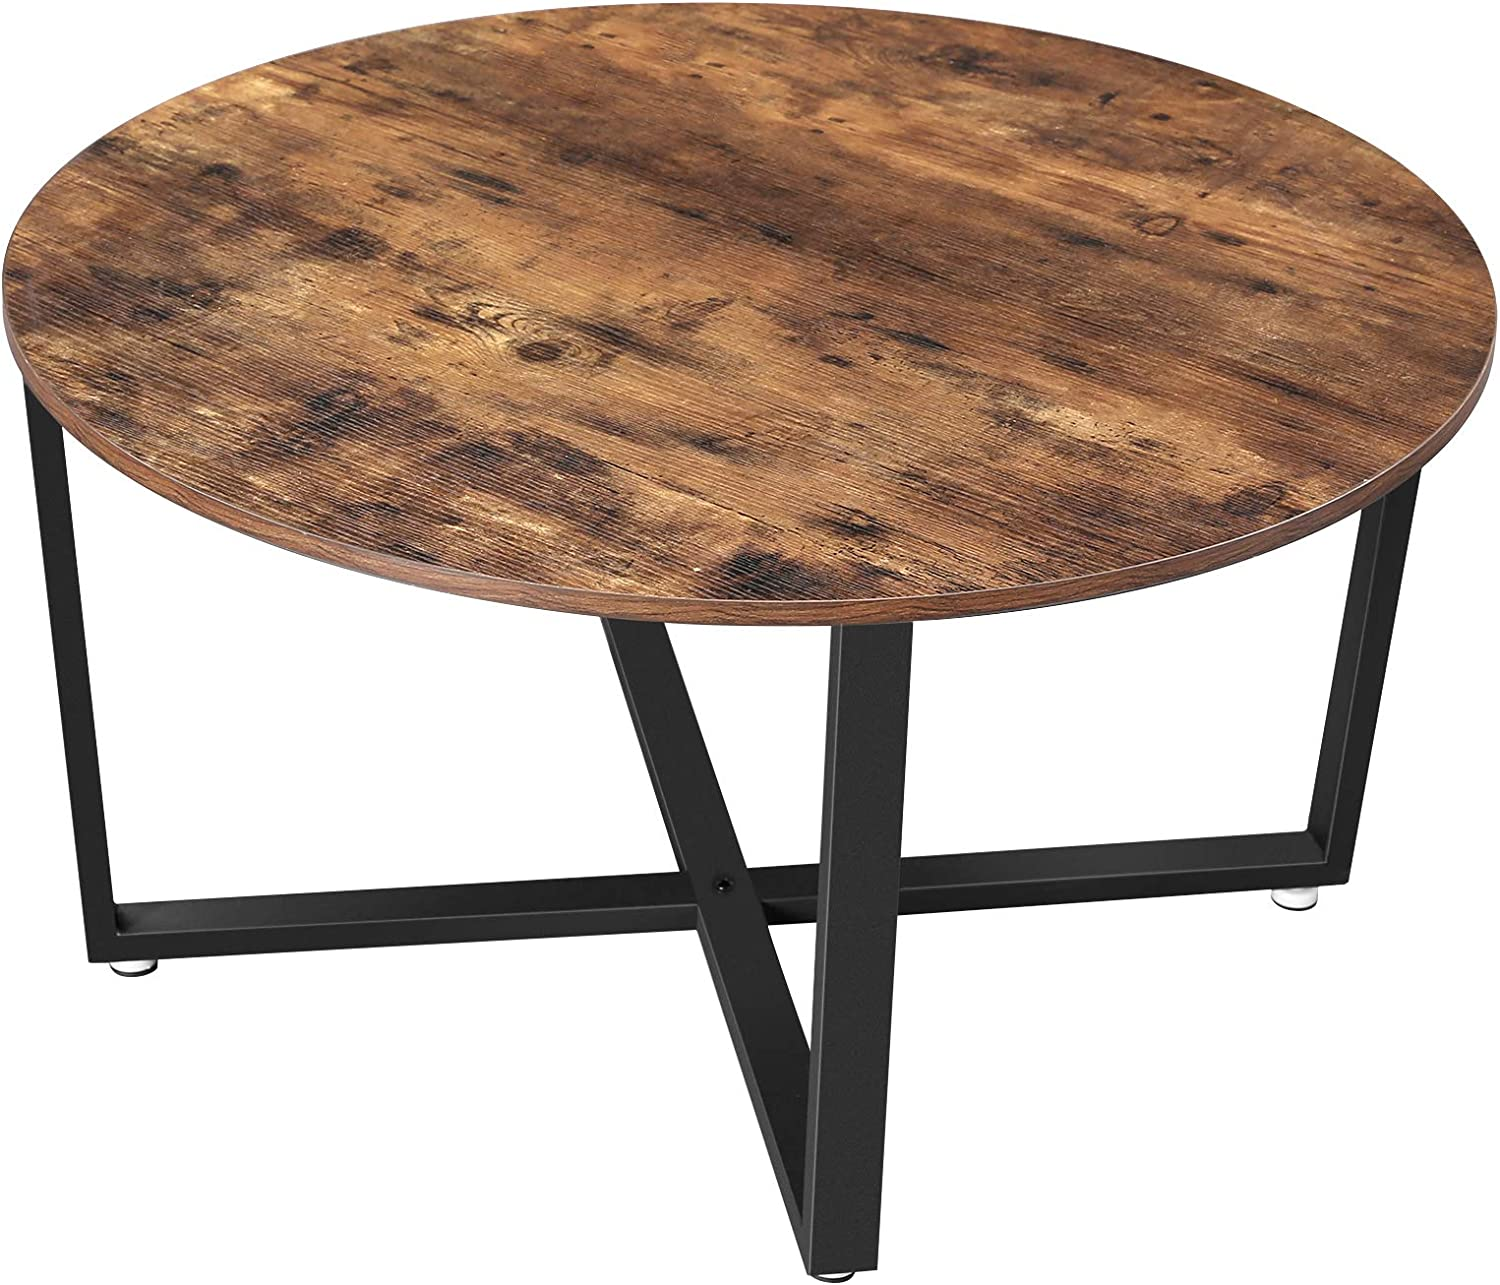 - VASAGLE Round Coffee Table, Industrial Style Cocktail Table